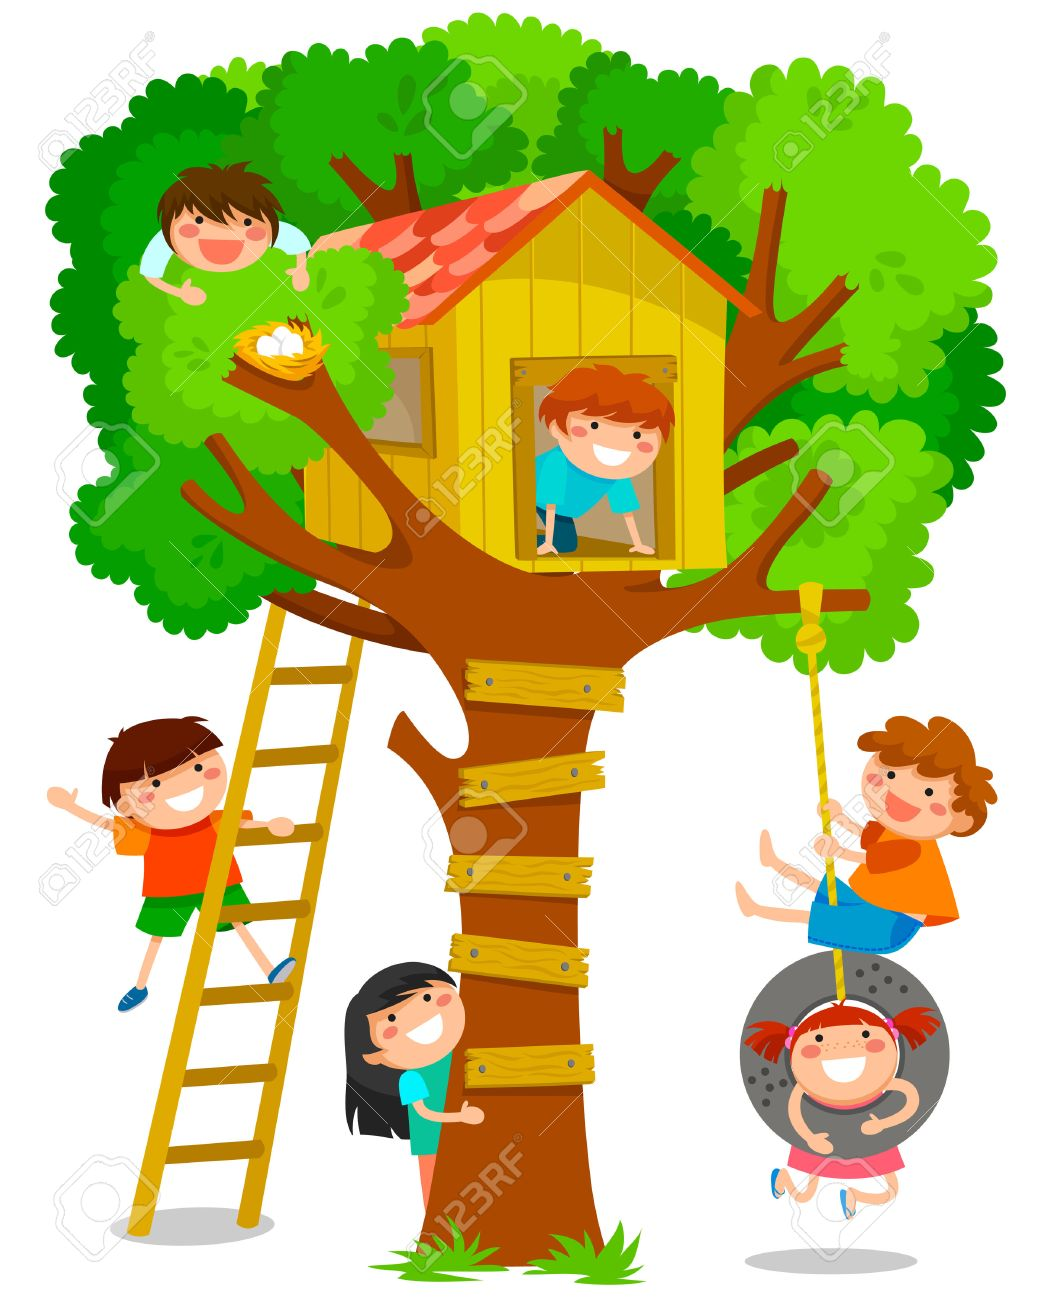 94 987 tree house cliparts stock vector and royalty free tree house rh 123rf com treehouse clipart free image tree house clipart